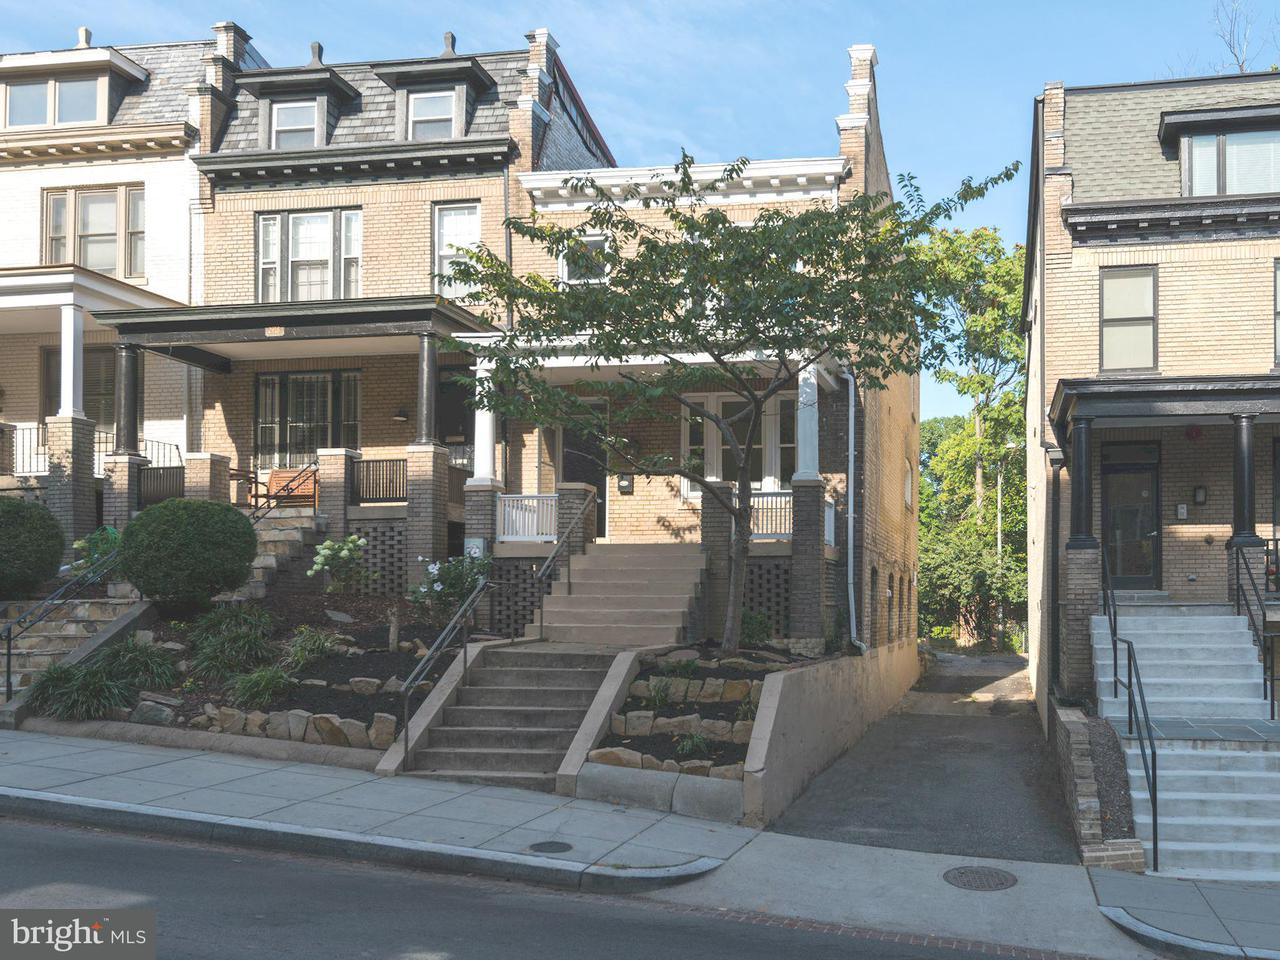 Townhouse for Sale at 2920 18TH ST NW 2920 18TH ST NW Washington, District Of Columbia 20009 United States